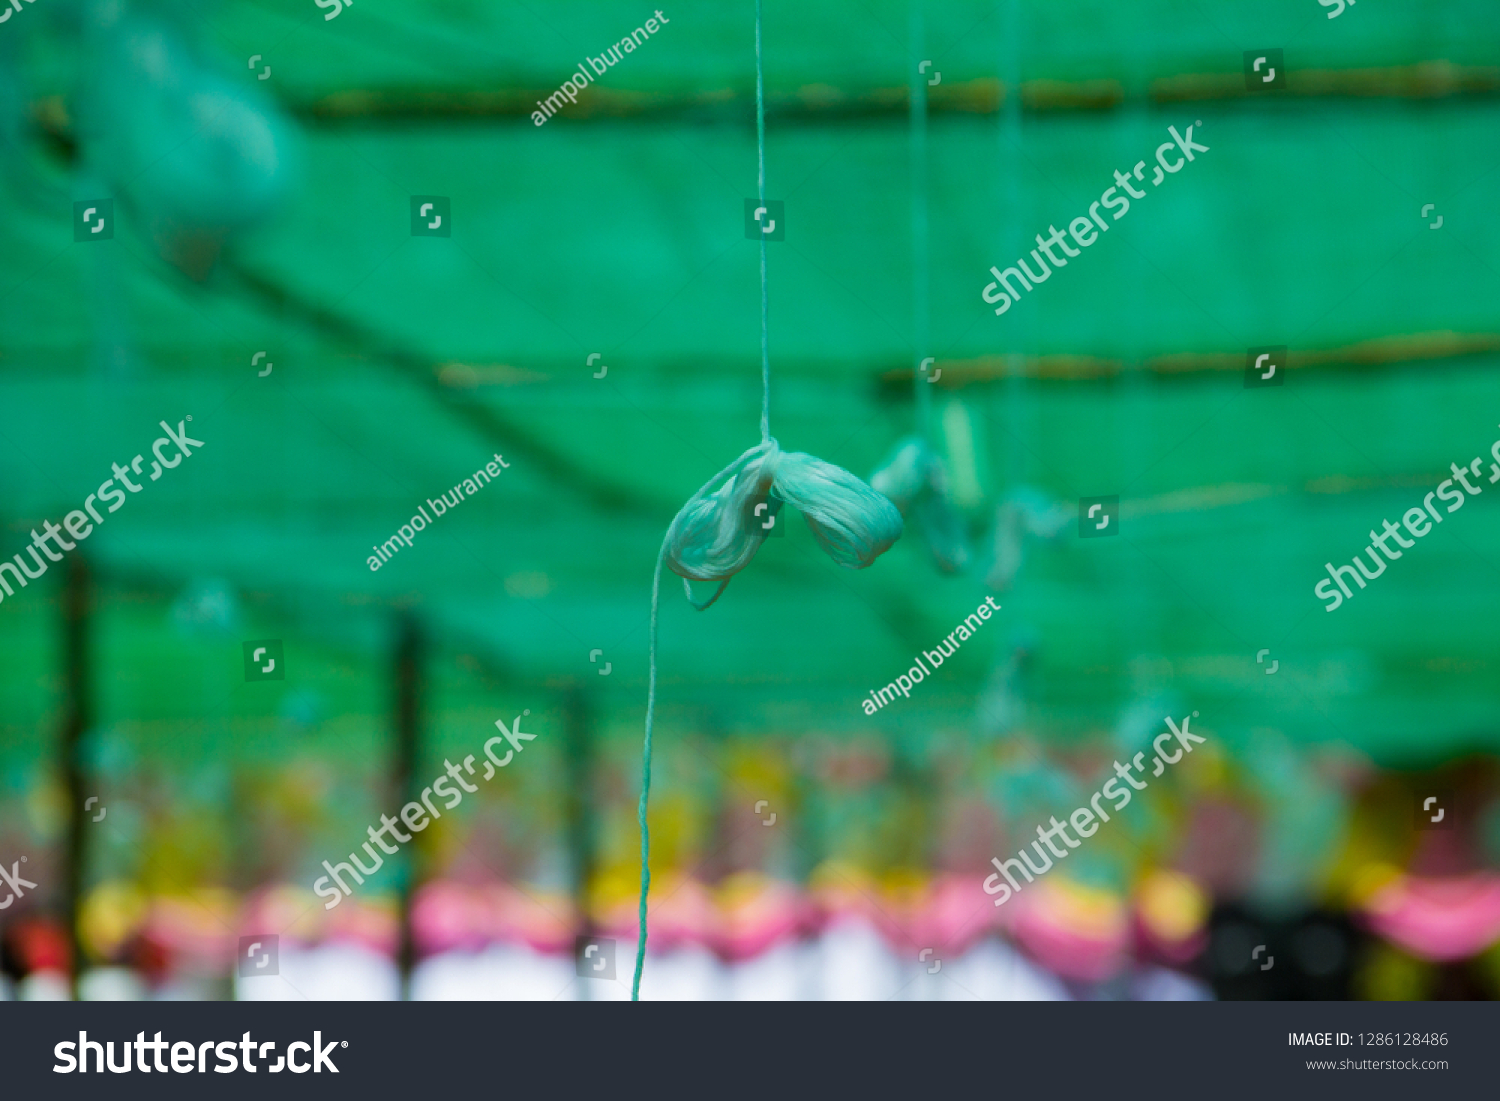 holy thread,holy thread and green background,holy thread in the temple. #1286128486